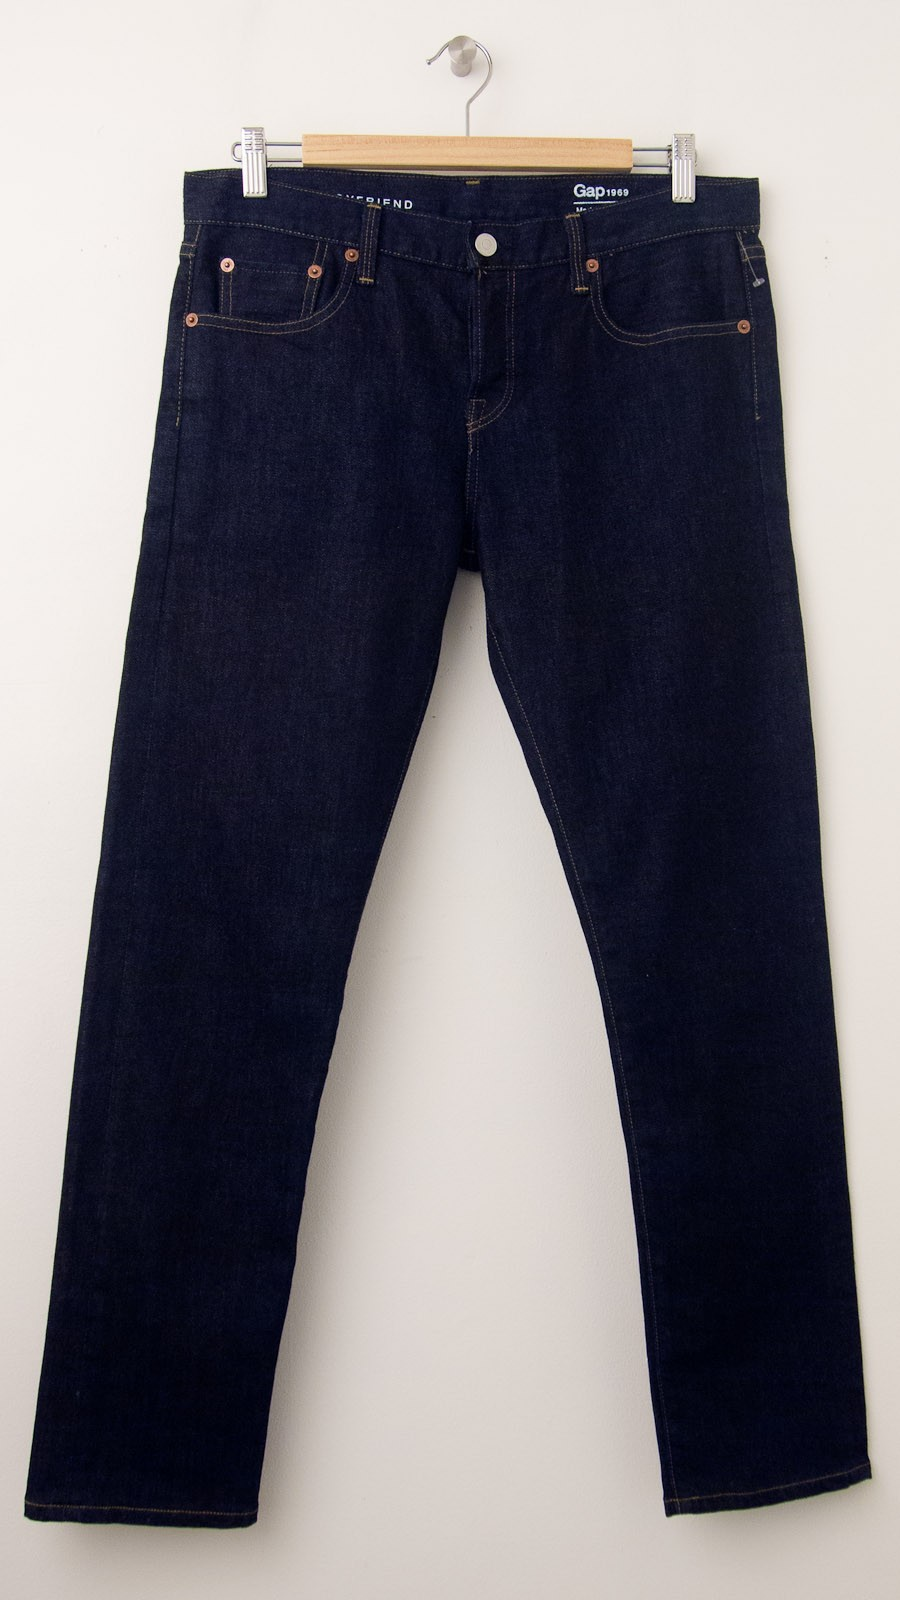 New Gap 1969 Made In Usa Selvedge Sexy Boyfriend Jeans In